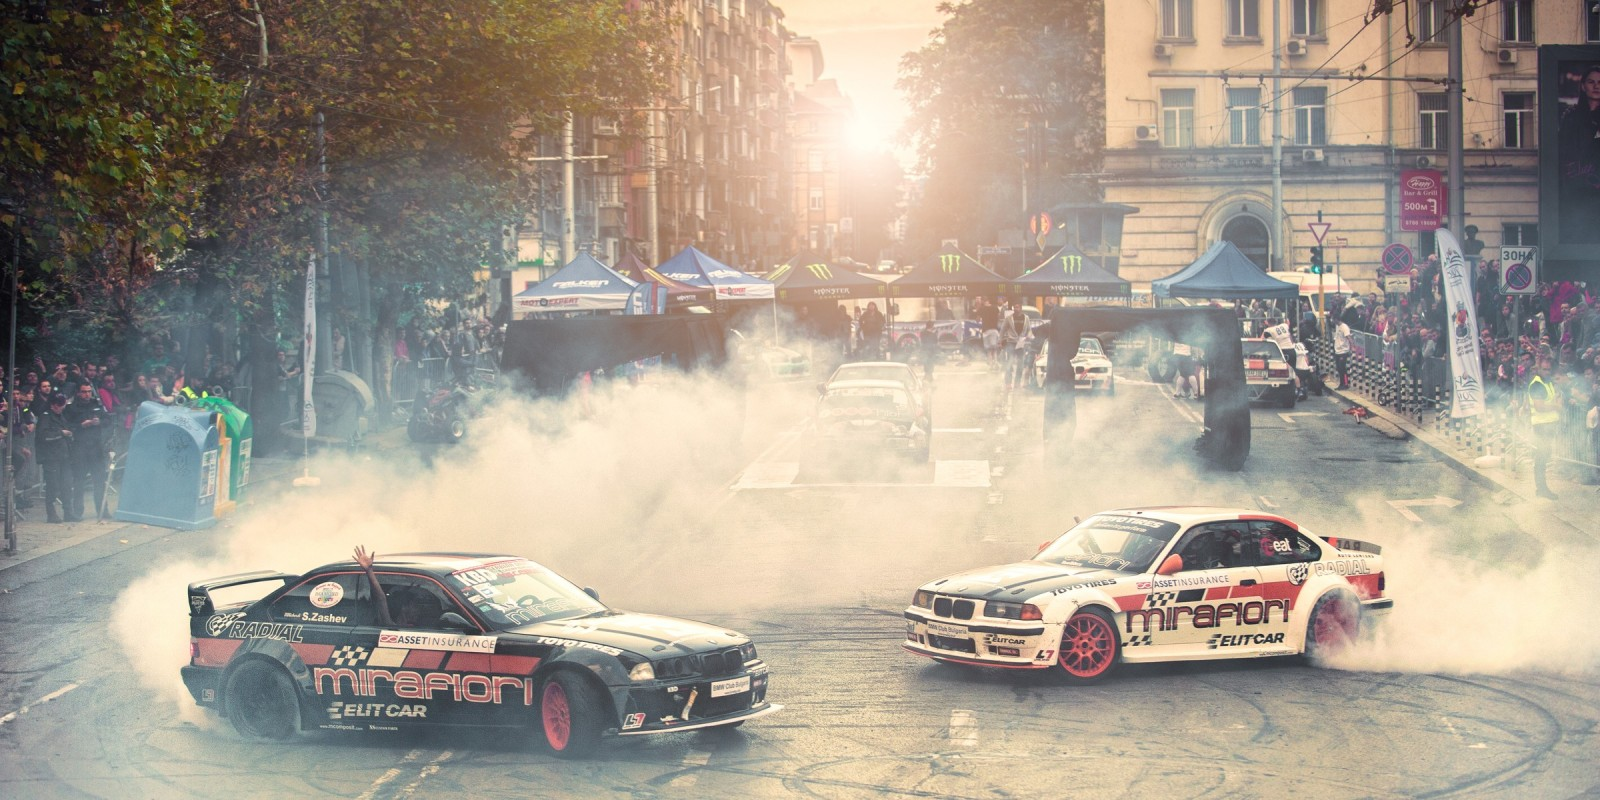 The biggest extreme sport festival in Bulgaria in which Alex Yazov from ME took part in the drift demos.